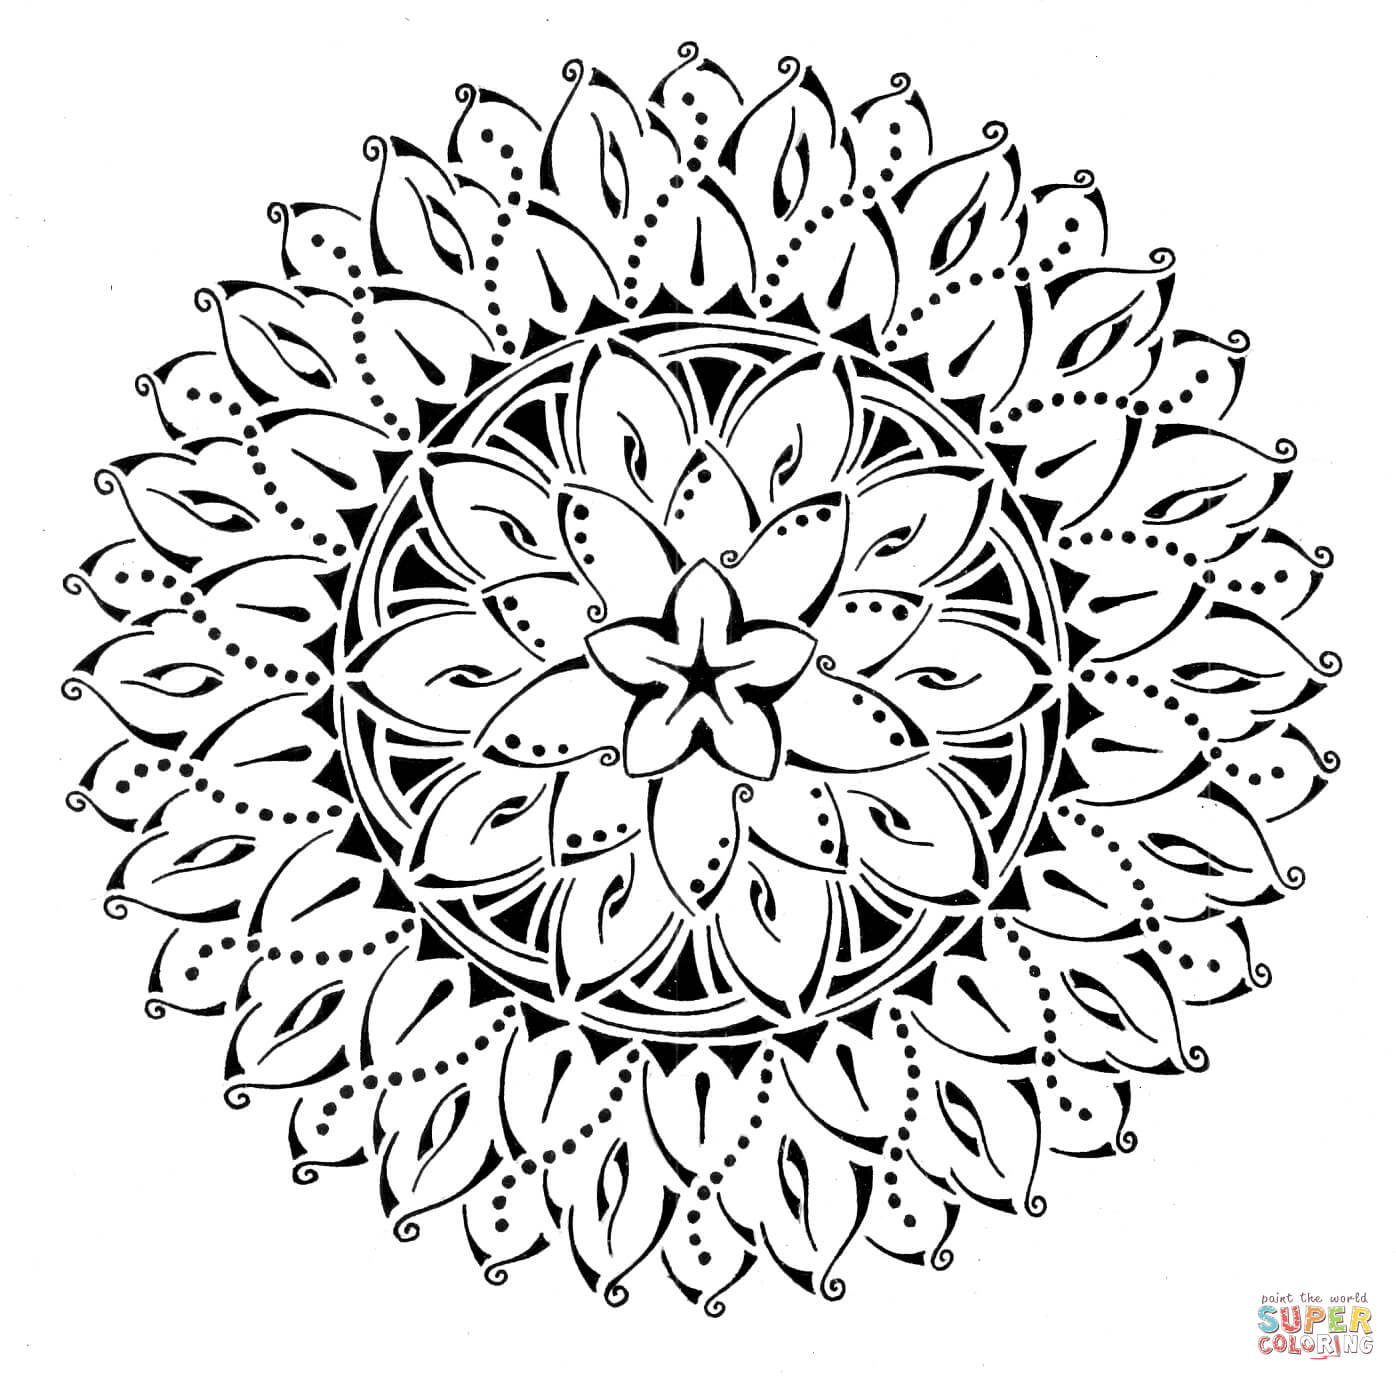 Floral Tribal Mandala coloring page | Free Printable Coloring Pages